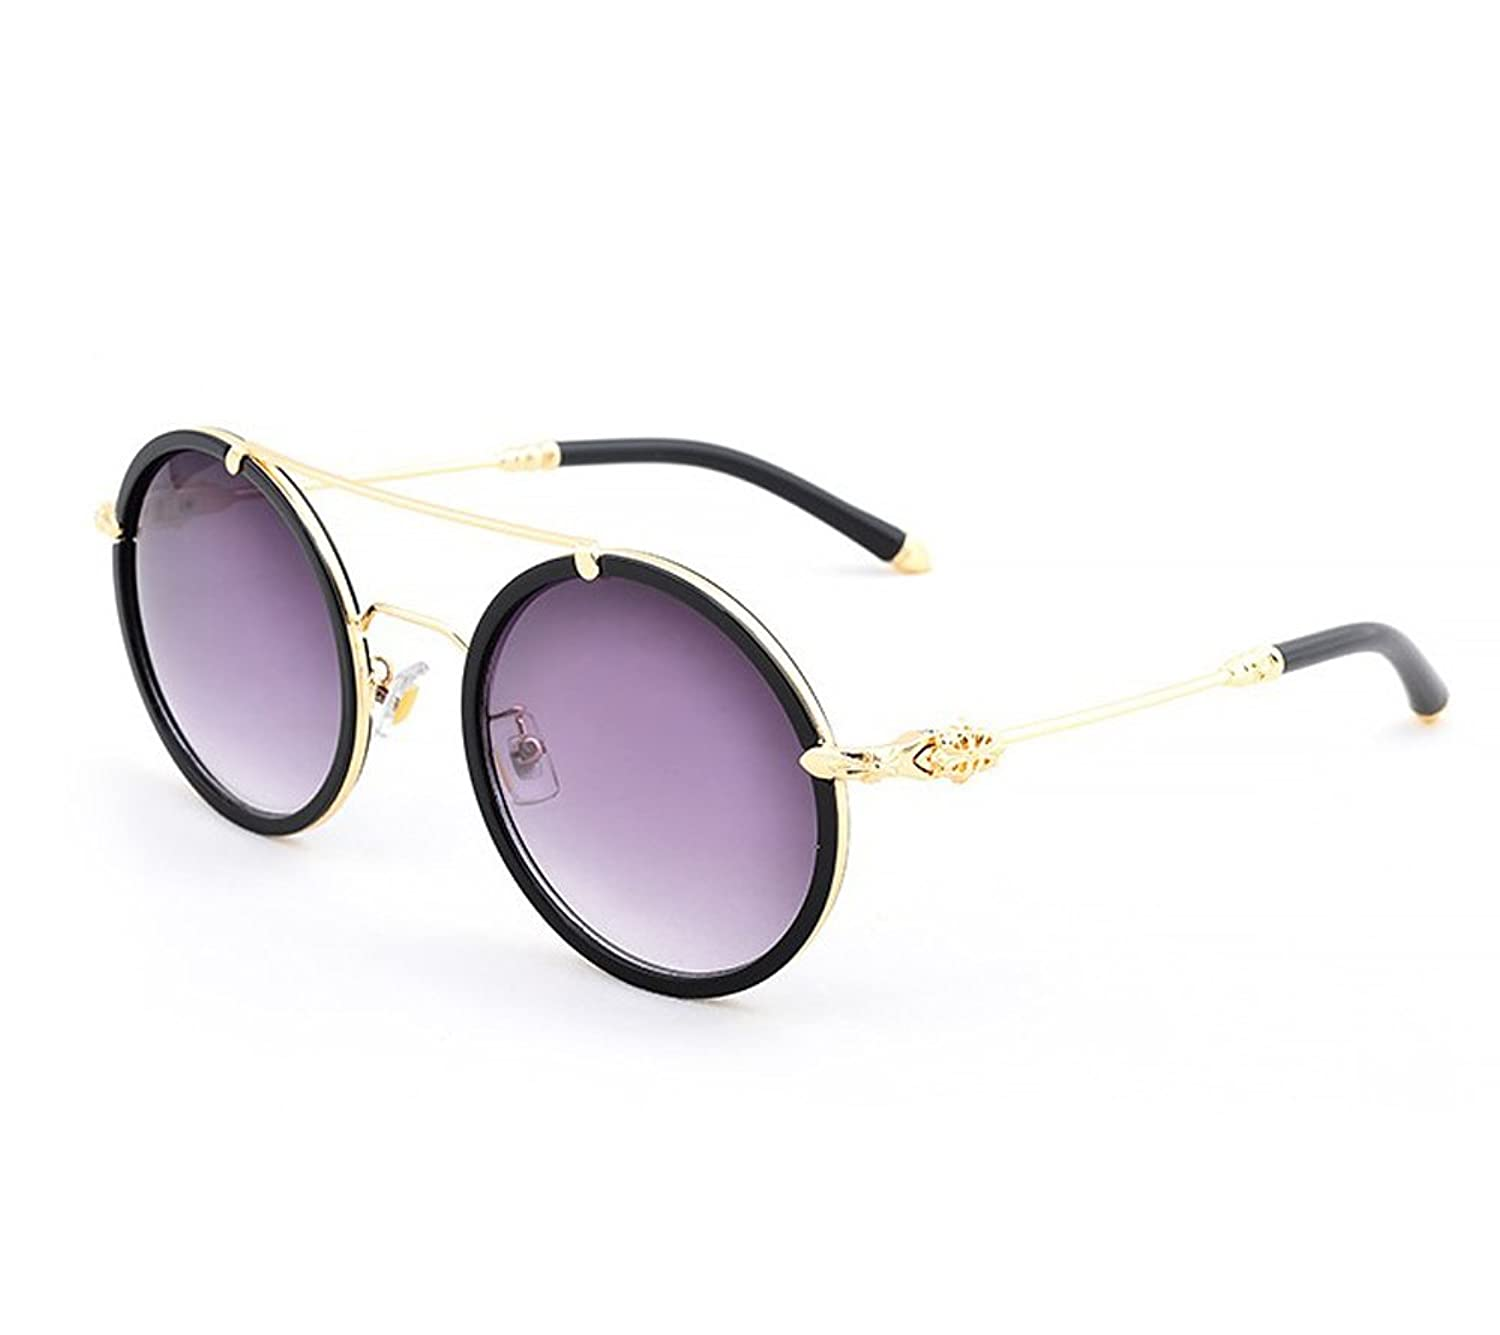 Chrome Hearts sunglasses retro Ms. round metal frame sunglasses